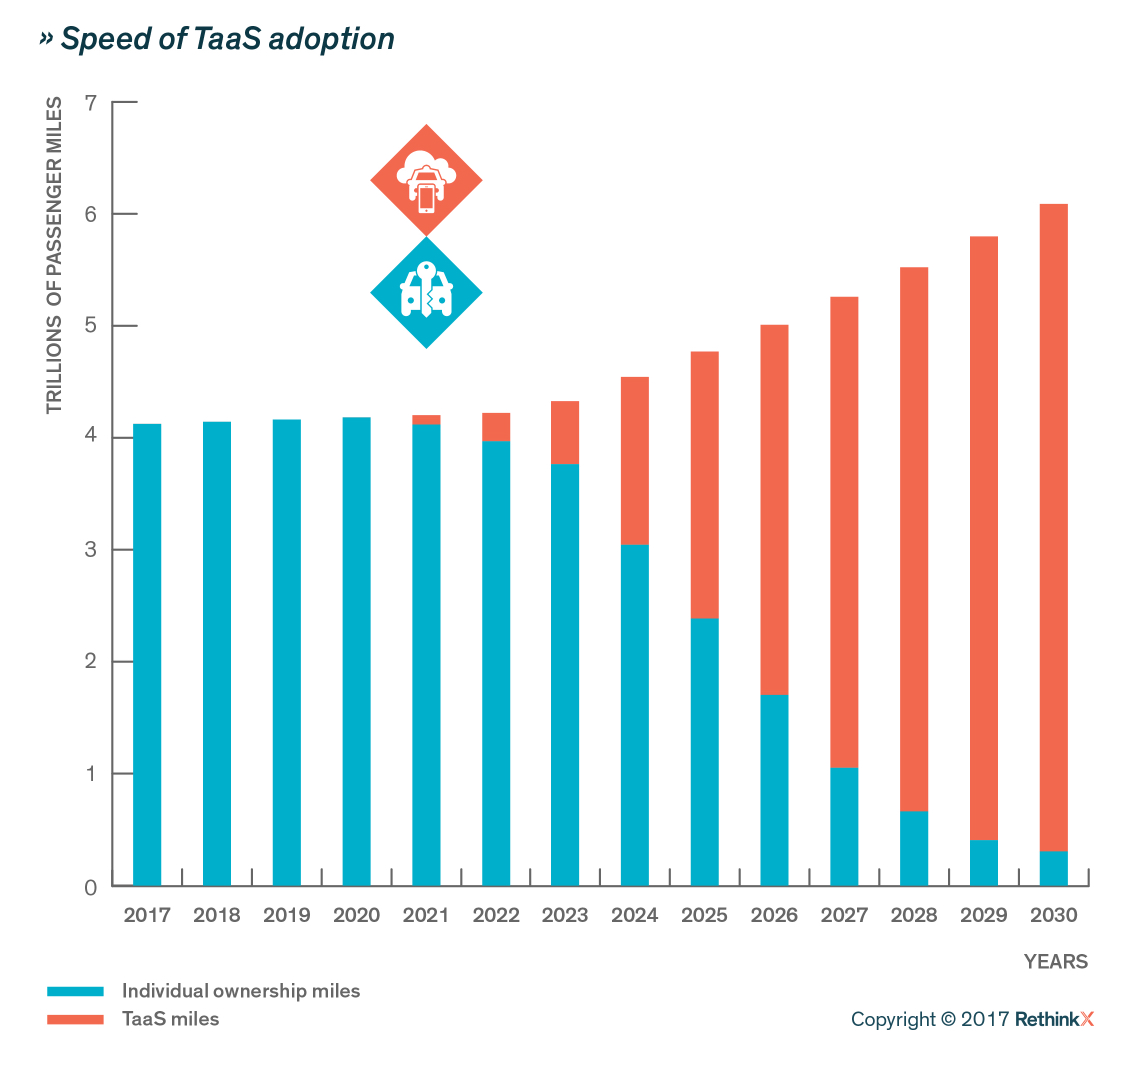 A chart of the Speed of TaaS adoption